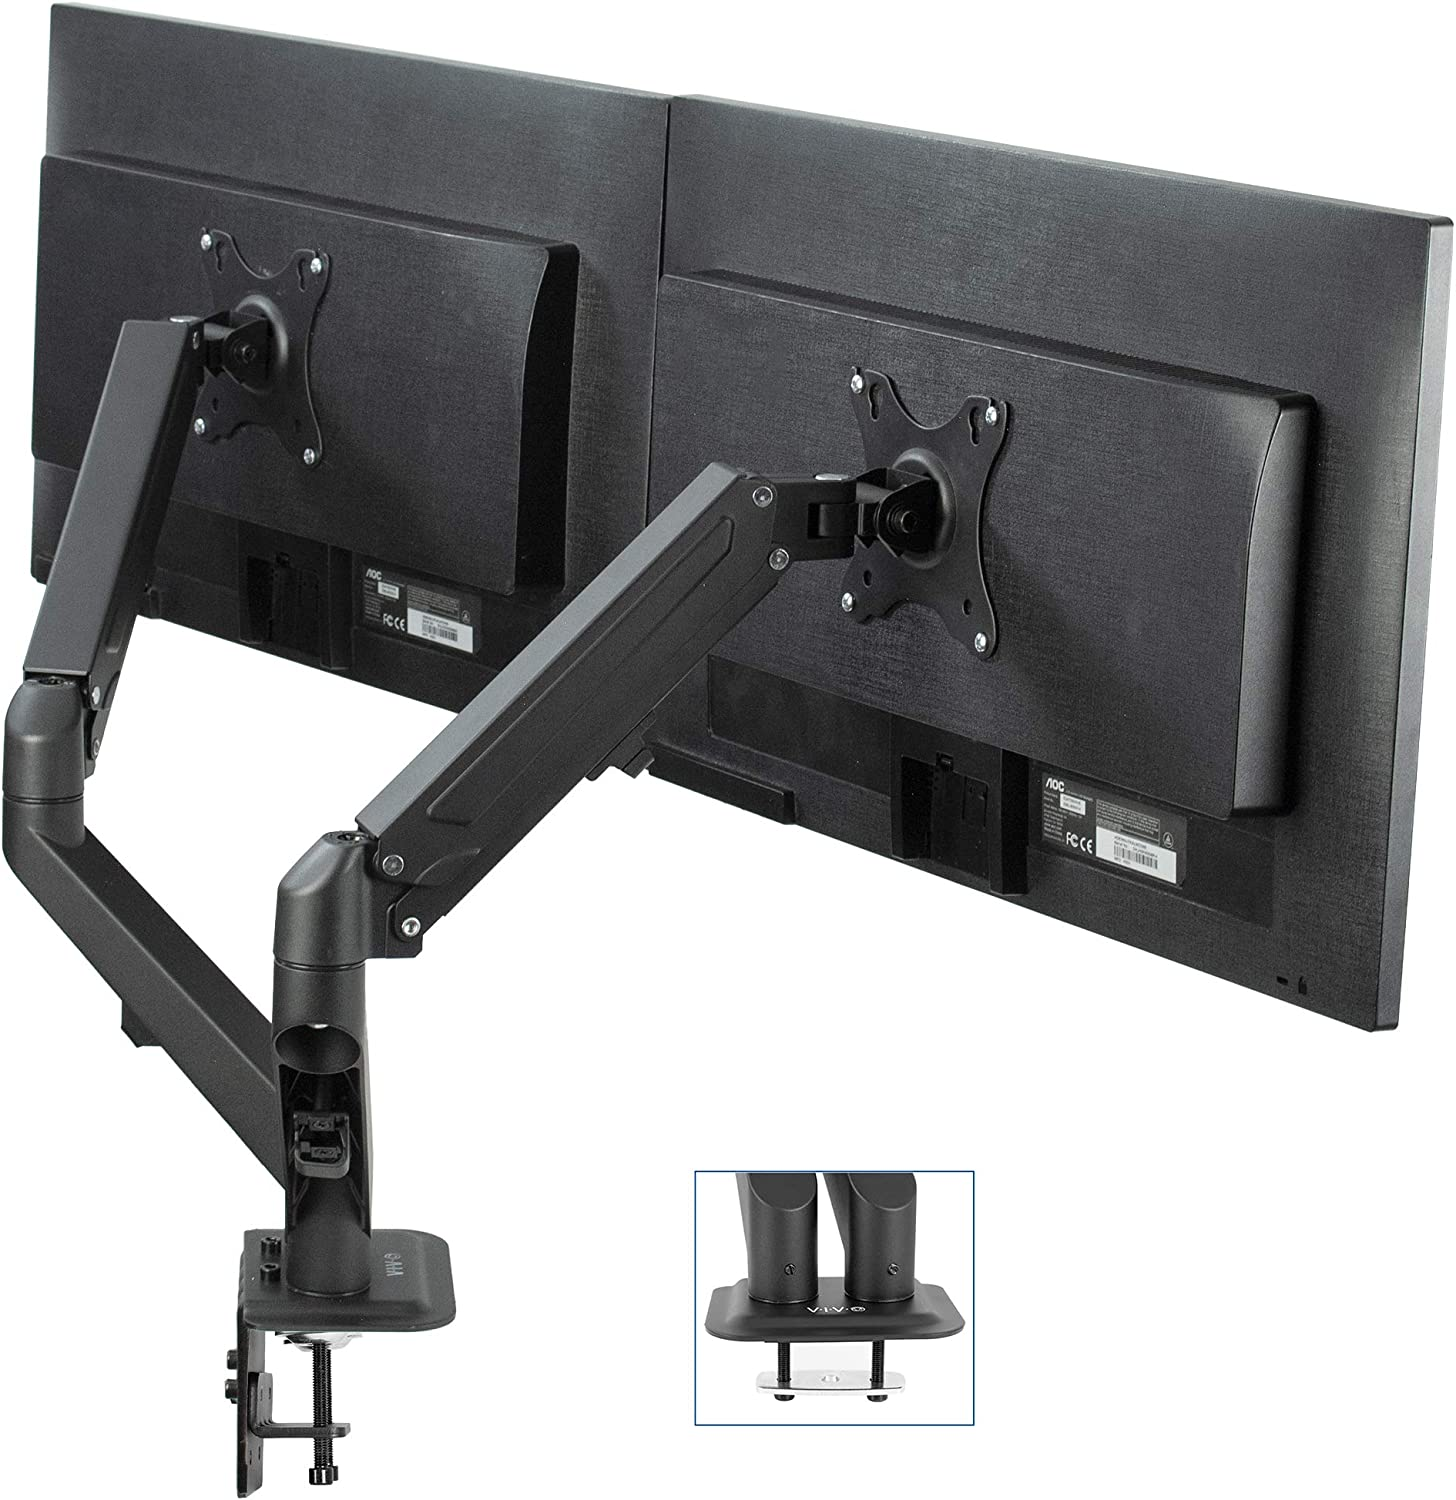 VIVO Black Articulating Dual Pneumatic Spring Arm Clamp-on Desk Mount Stand, Fits 2 Monitor Screens 17 to 27 inches with Max VESA 100x100 (STAND-V102O)